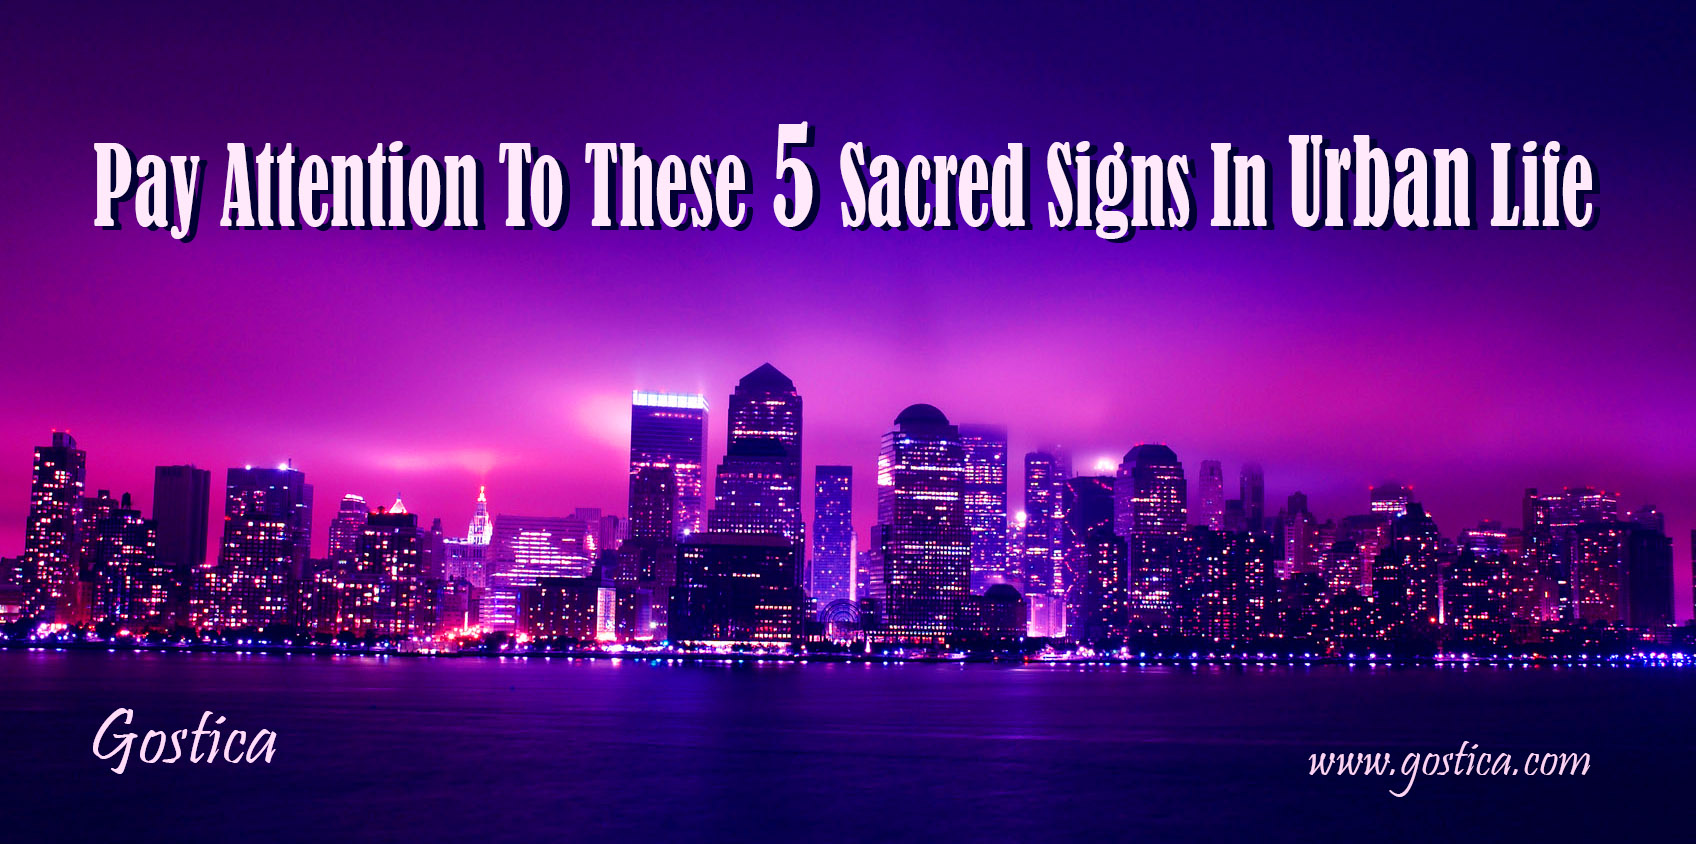 Pay-Attention-To-These-5-Sacred-Signs-In-Urban-Life-.jpg